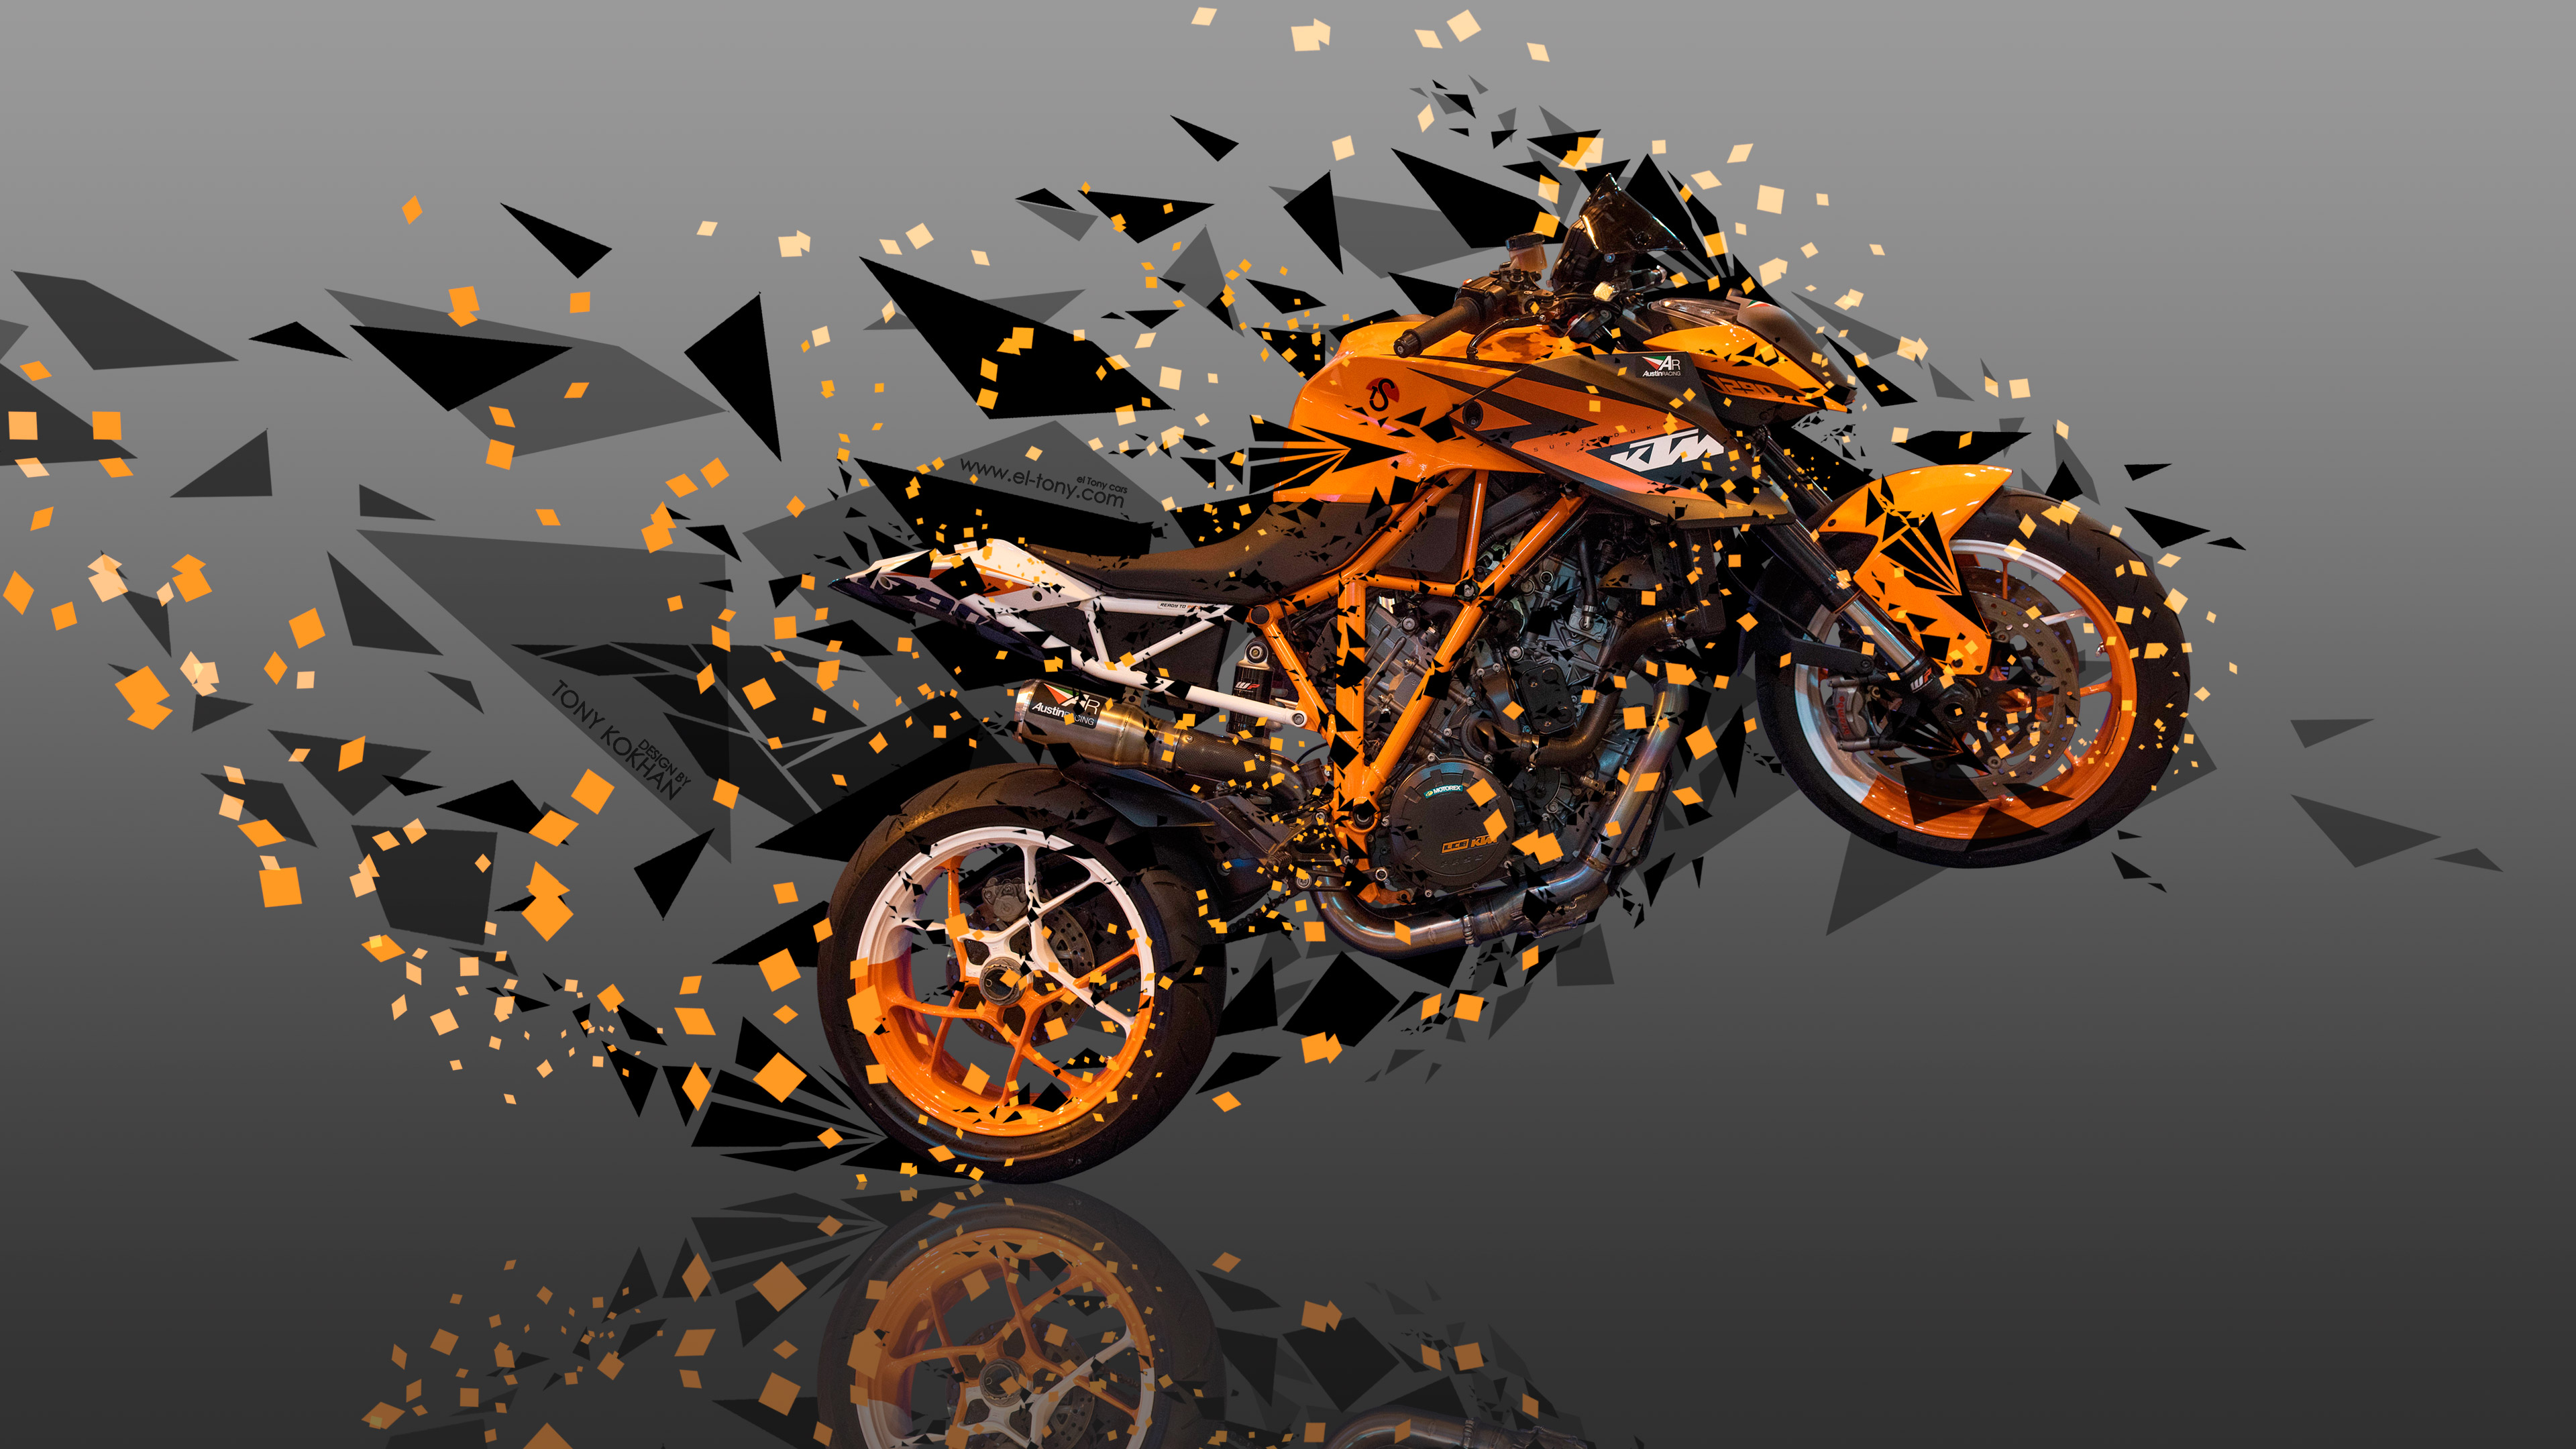 Delicieux Moto KTM LC8 Austin Racing Side Super Abstract Angle Bike 2017 | El Tony